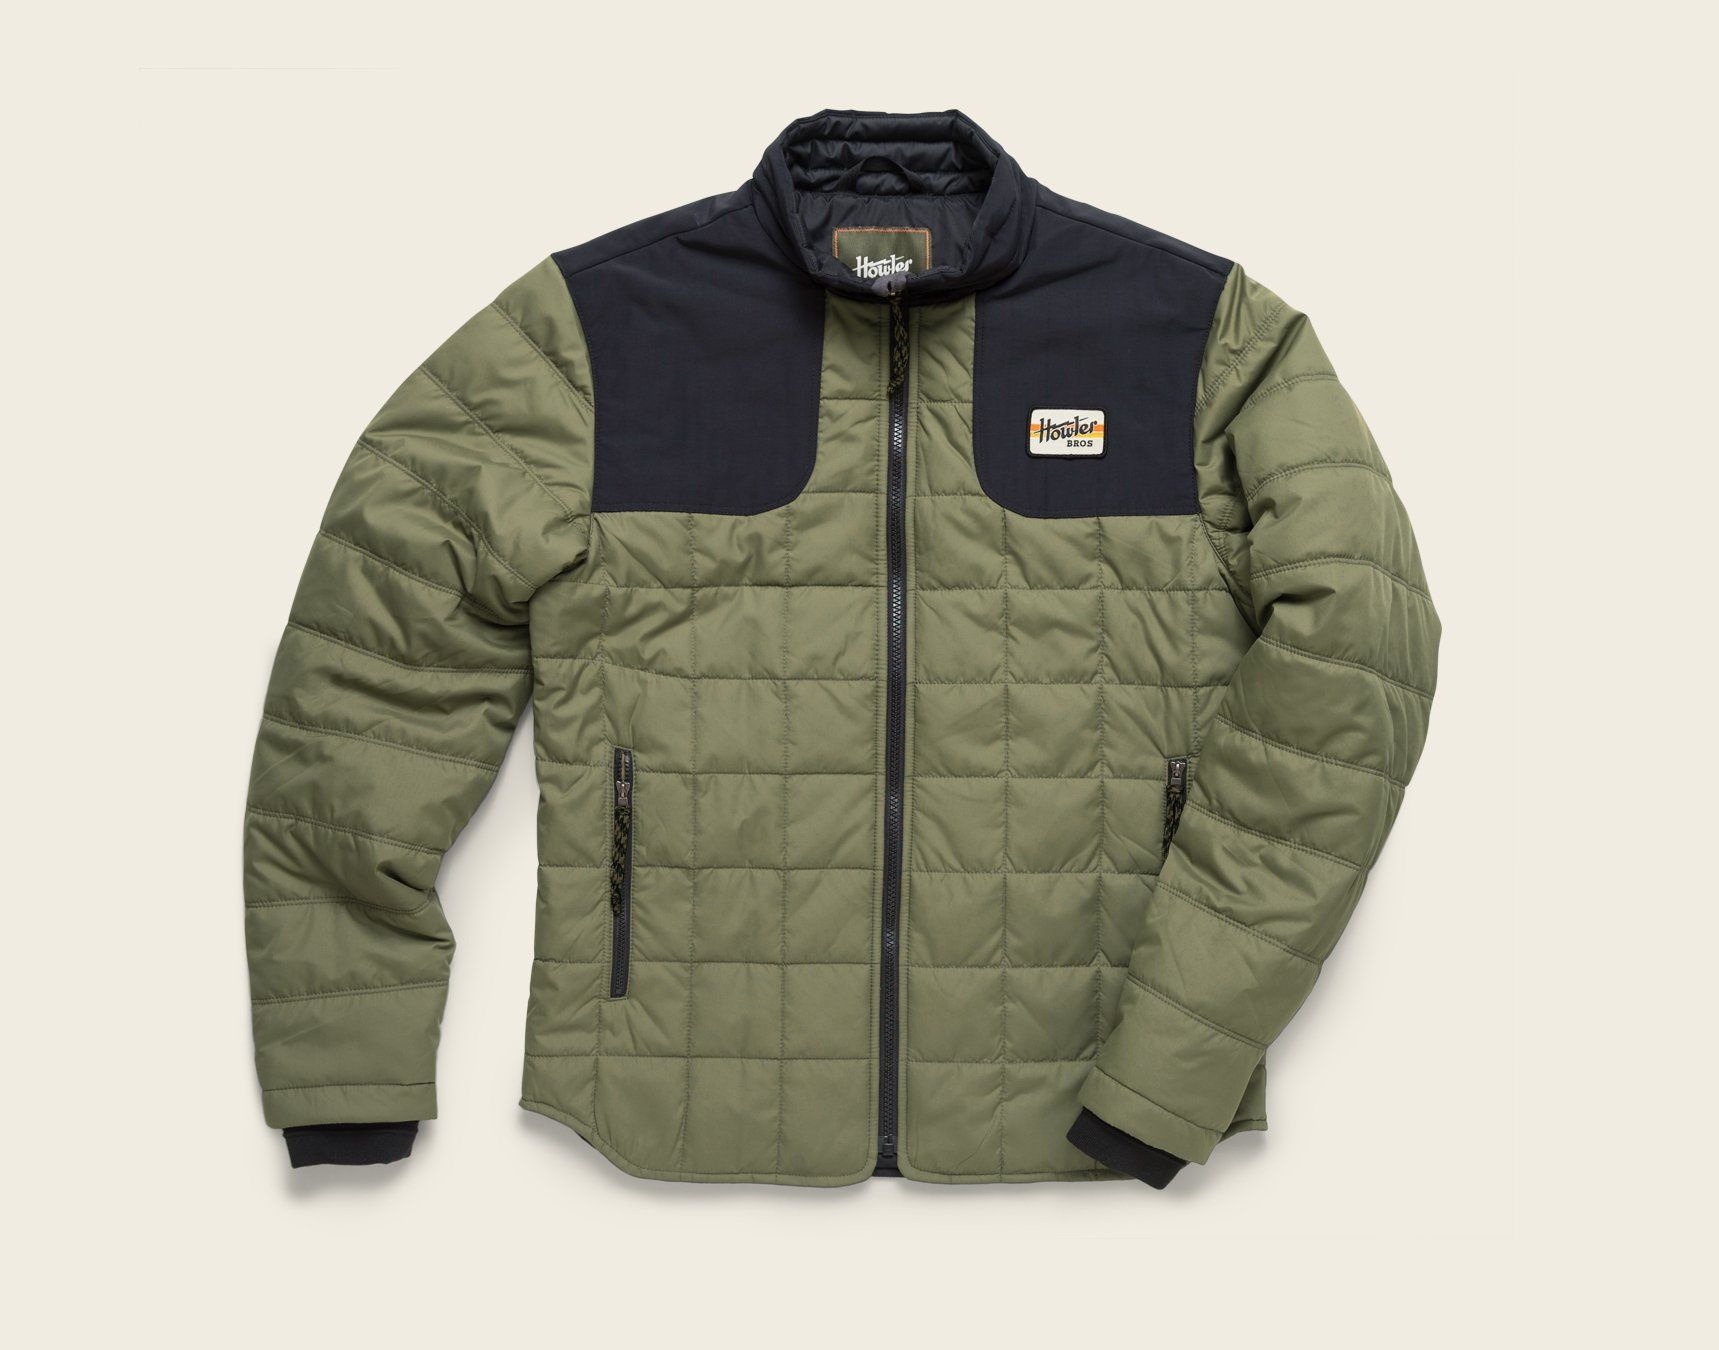 a3e98559a Merlin Jacket | Products | Jackets, Mens insulated jackets, Winter ...